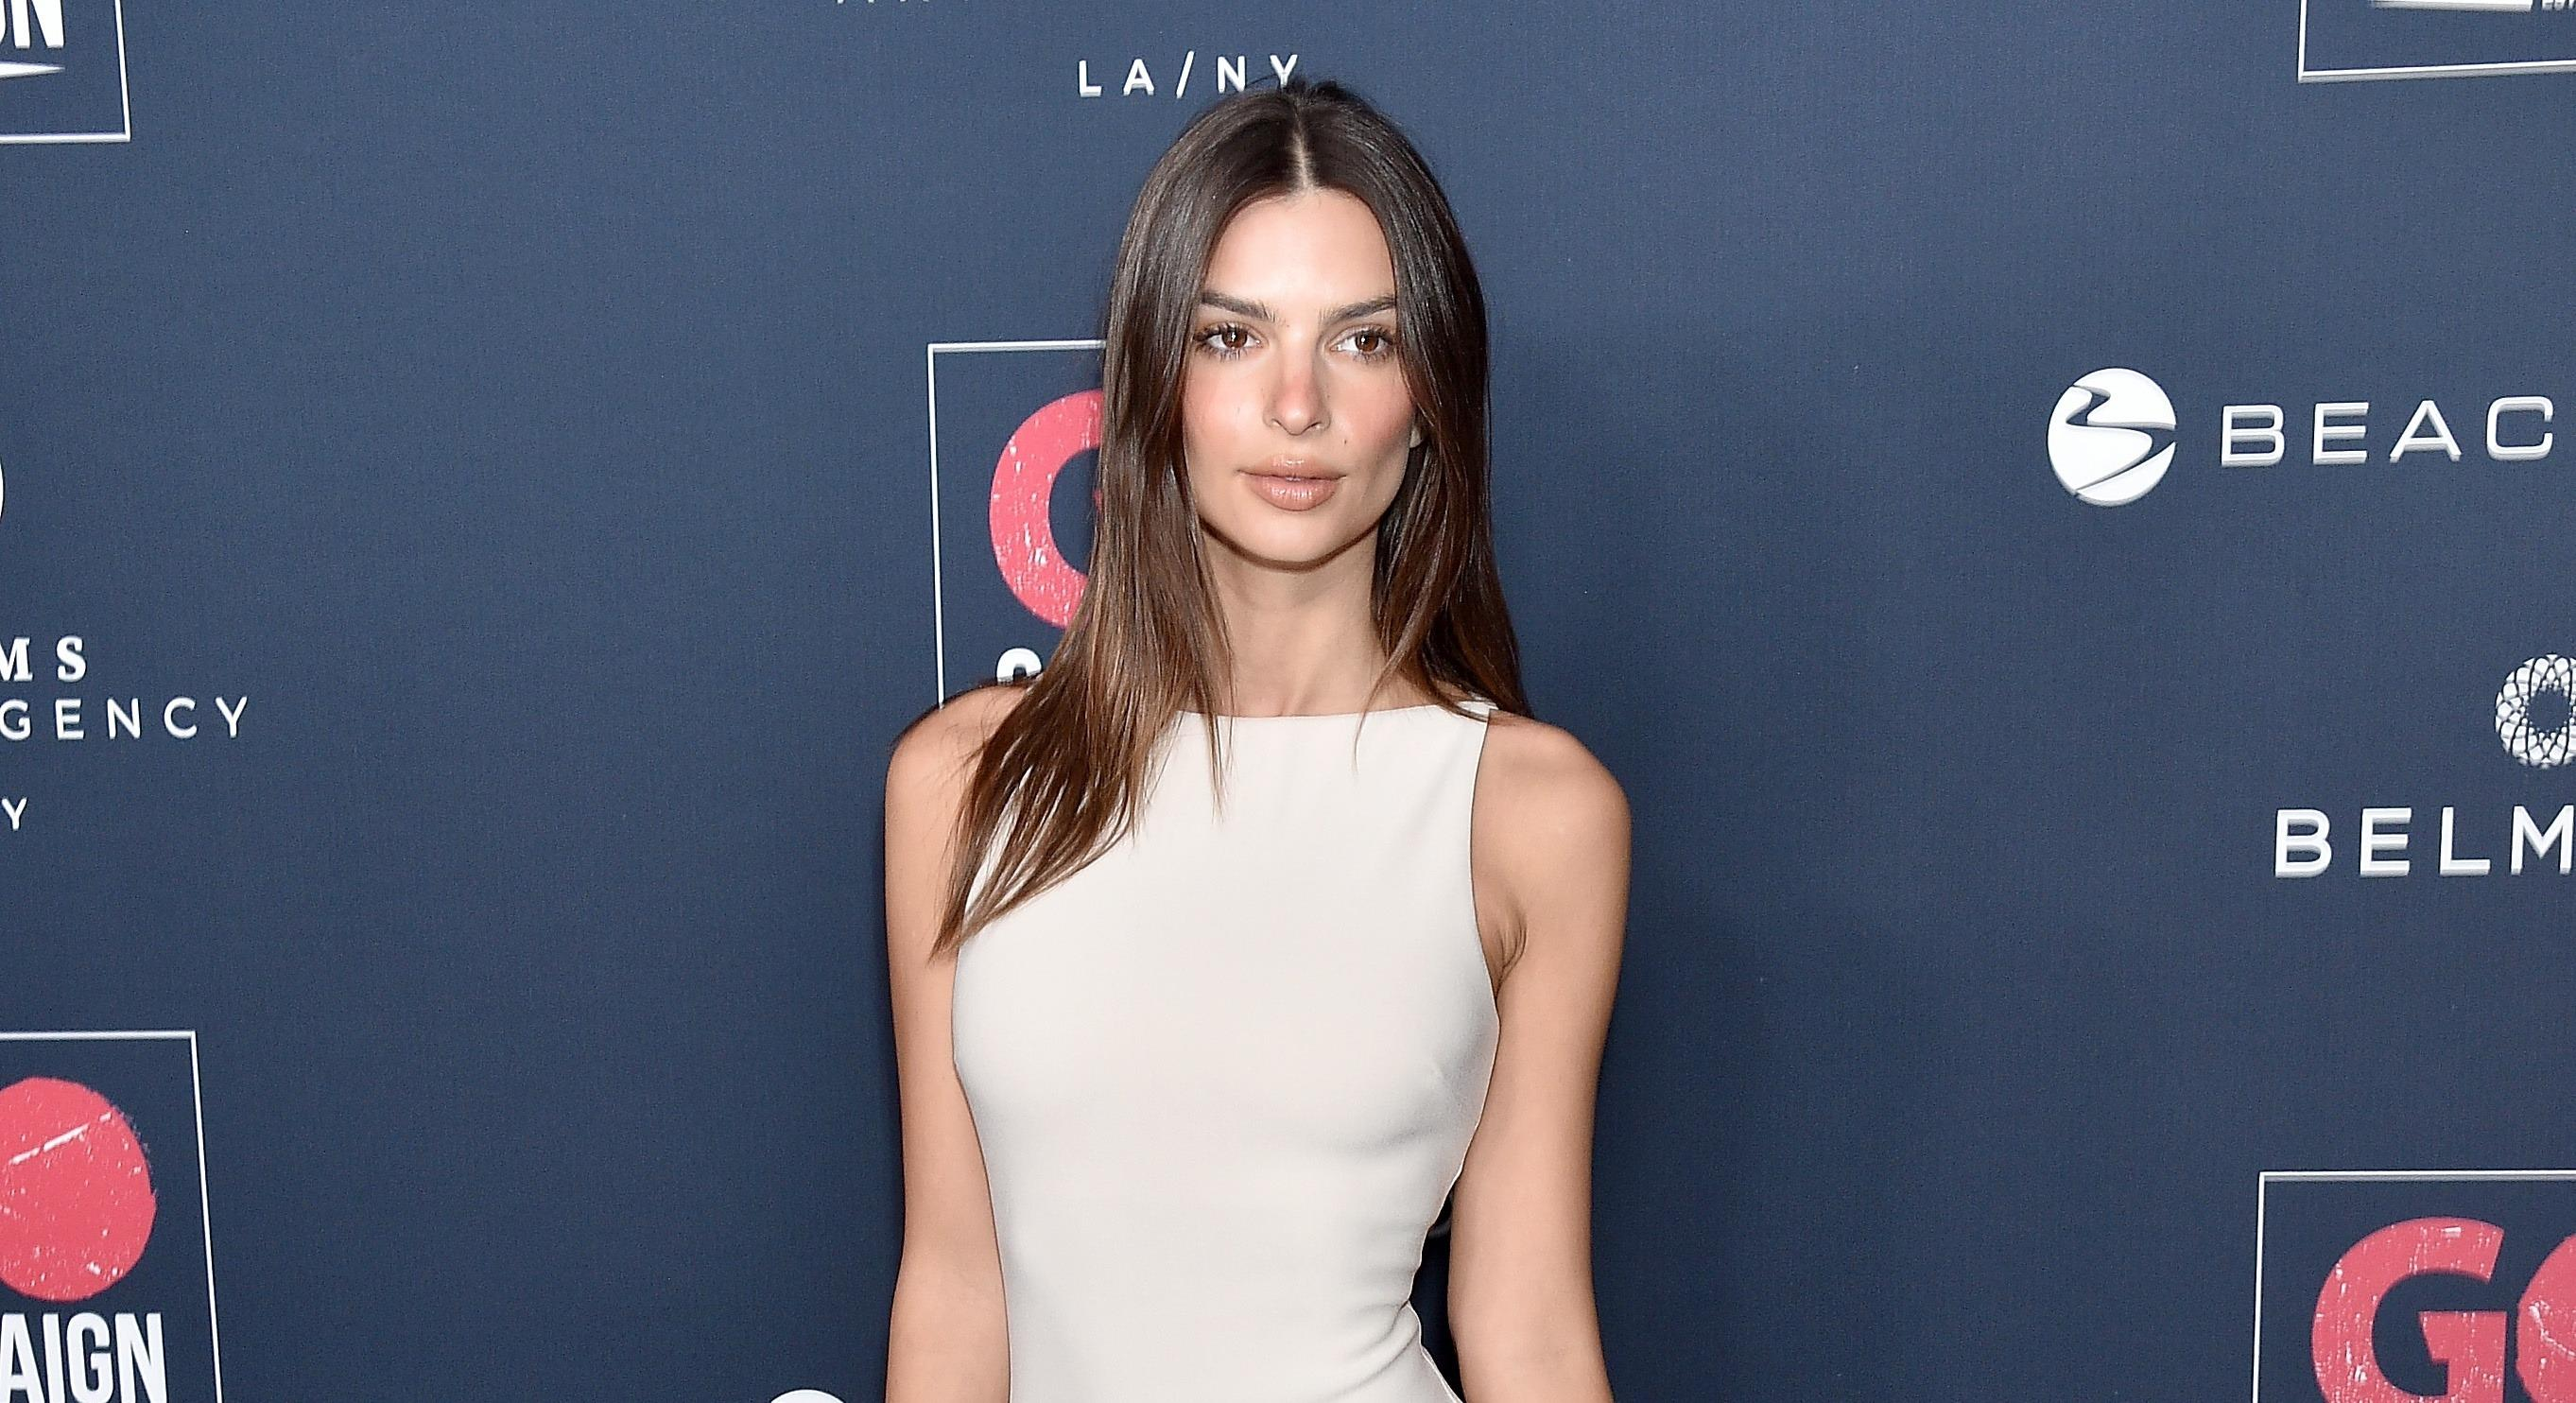 Emily Ratajkowski shares pic of her 14-year-old self that she'd use to prove her body was 'natural'